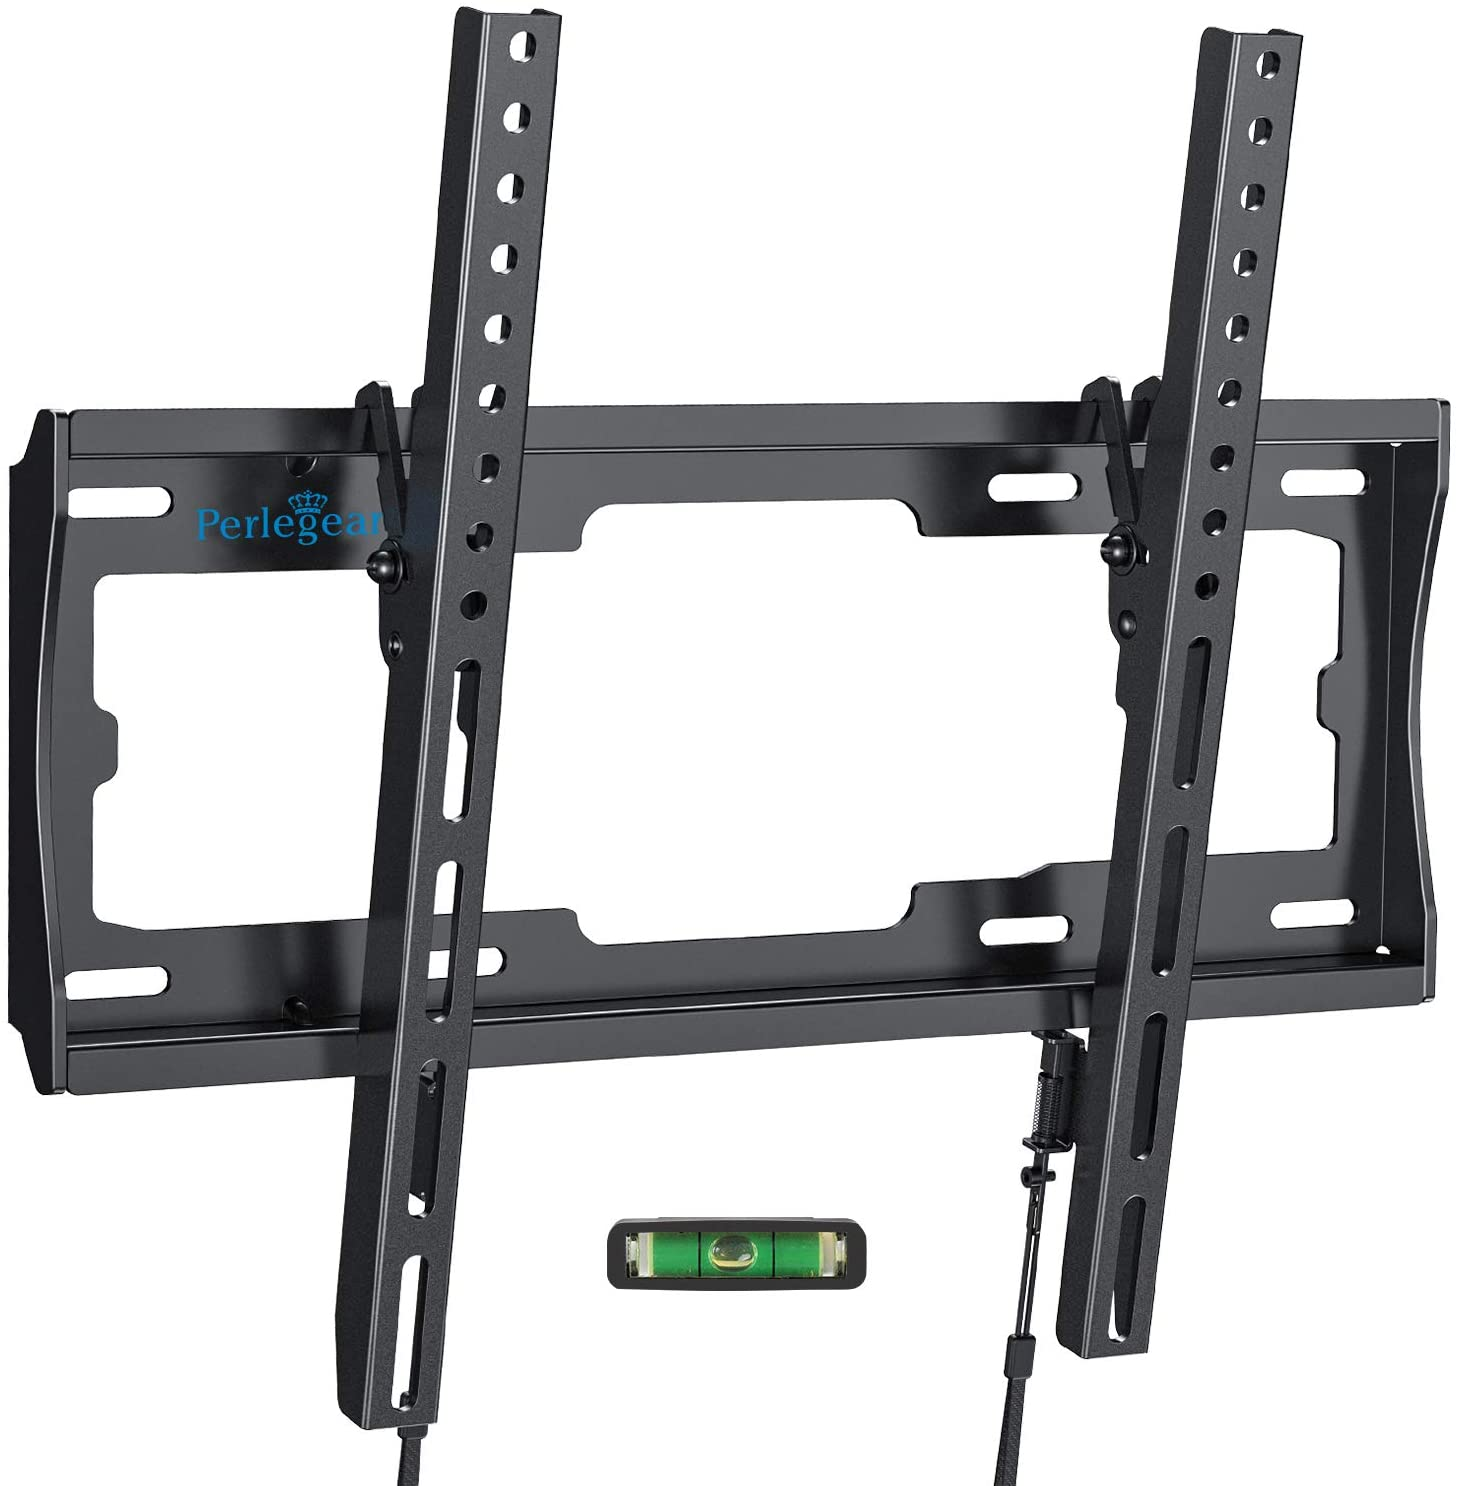 "Soporte de Pared para TV de 26""-55"" LED/LCD/Plasma TV Inclinable - Soportar 45kg, VESA Máx. 400x400mm, Nivel De Burbuja Incluidos para Facilitar La Instalación"